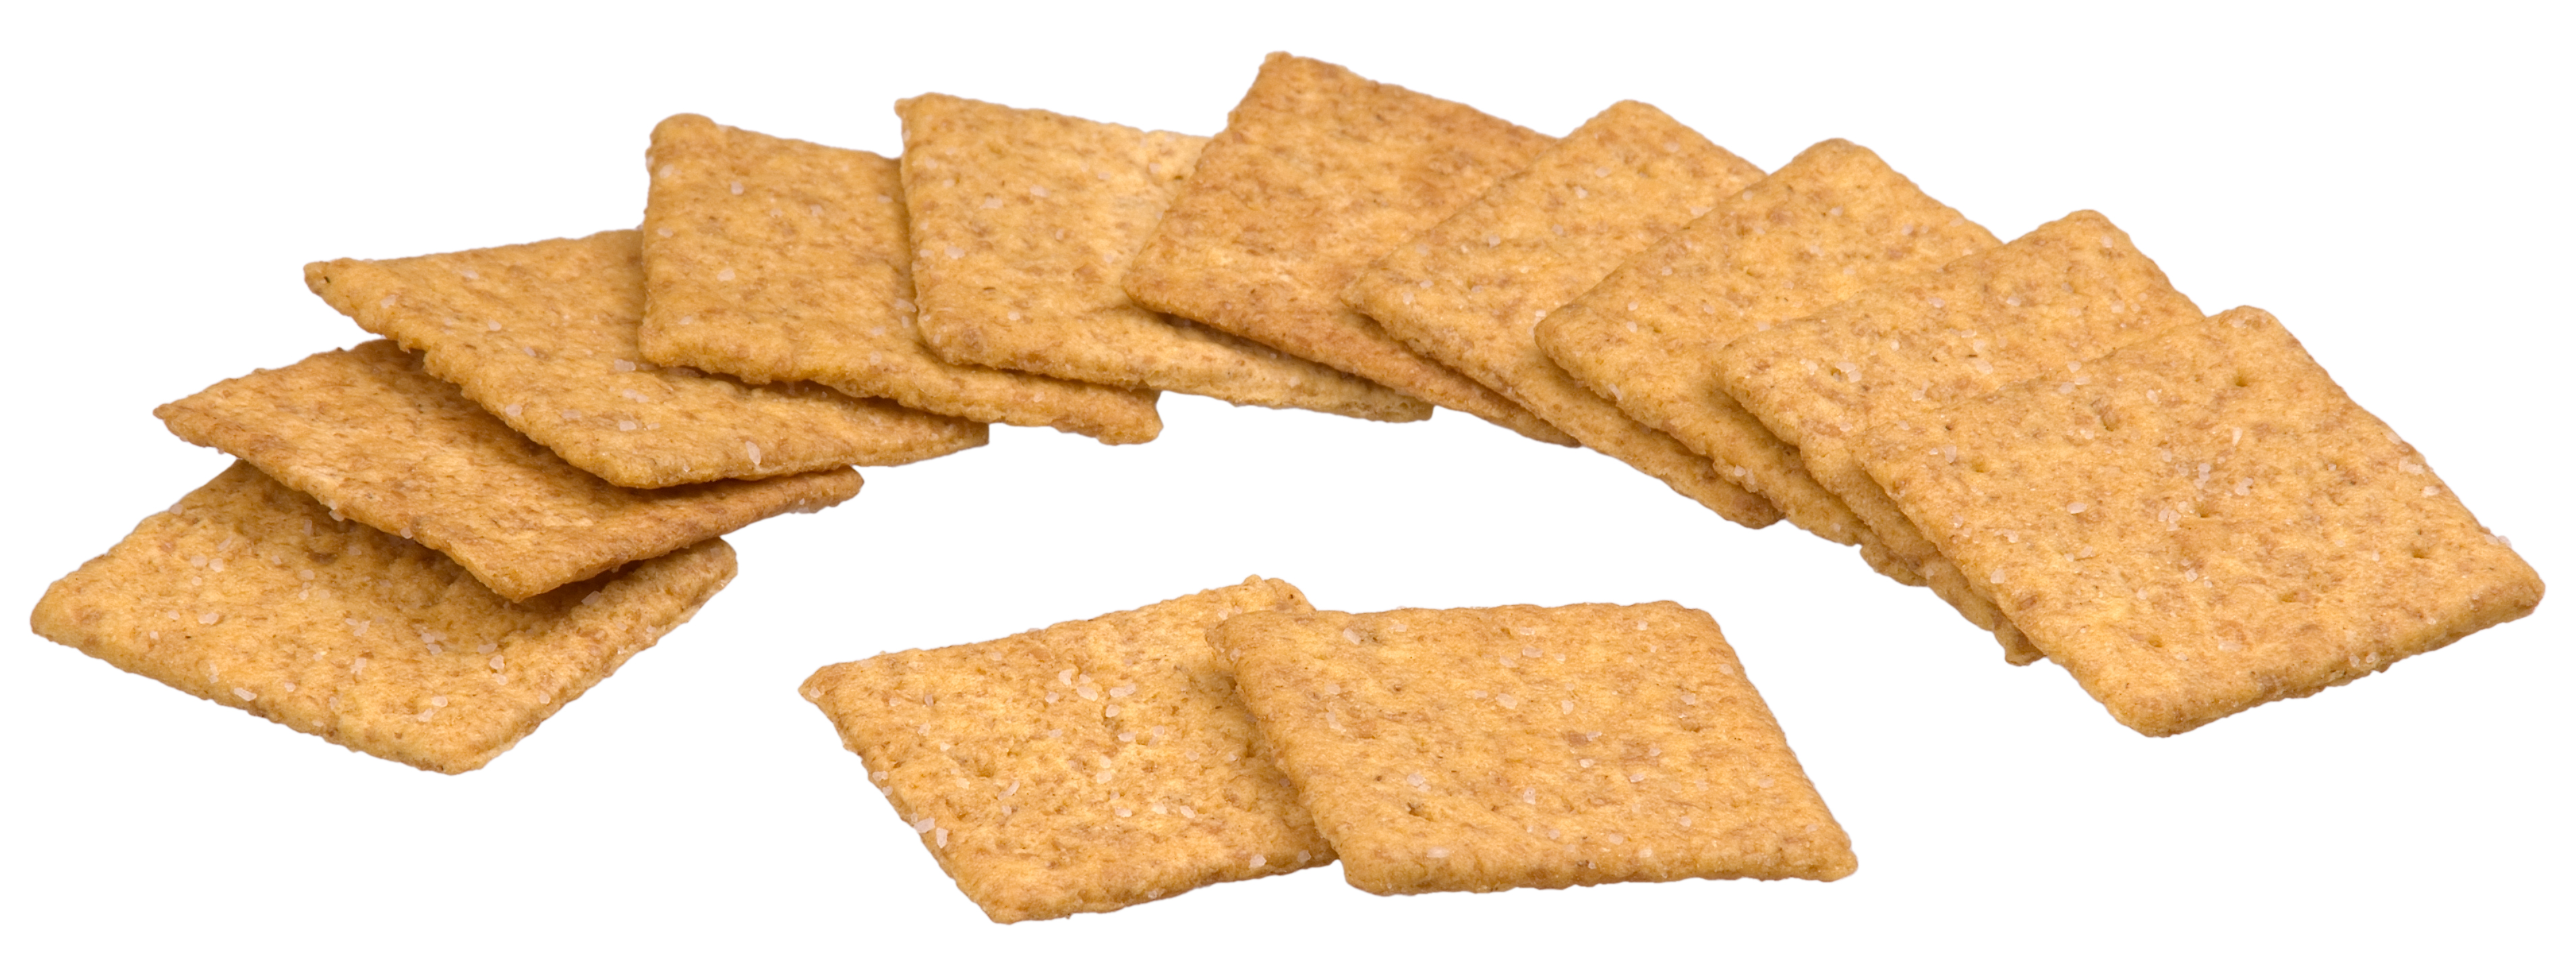 File:Wheat-Thins-Crackers.jpg - Wikimedia Commons